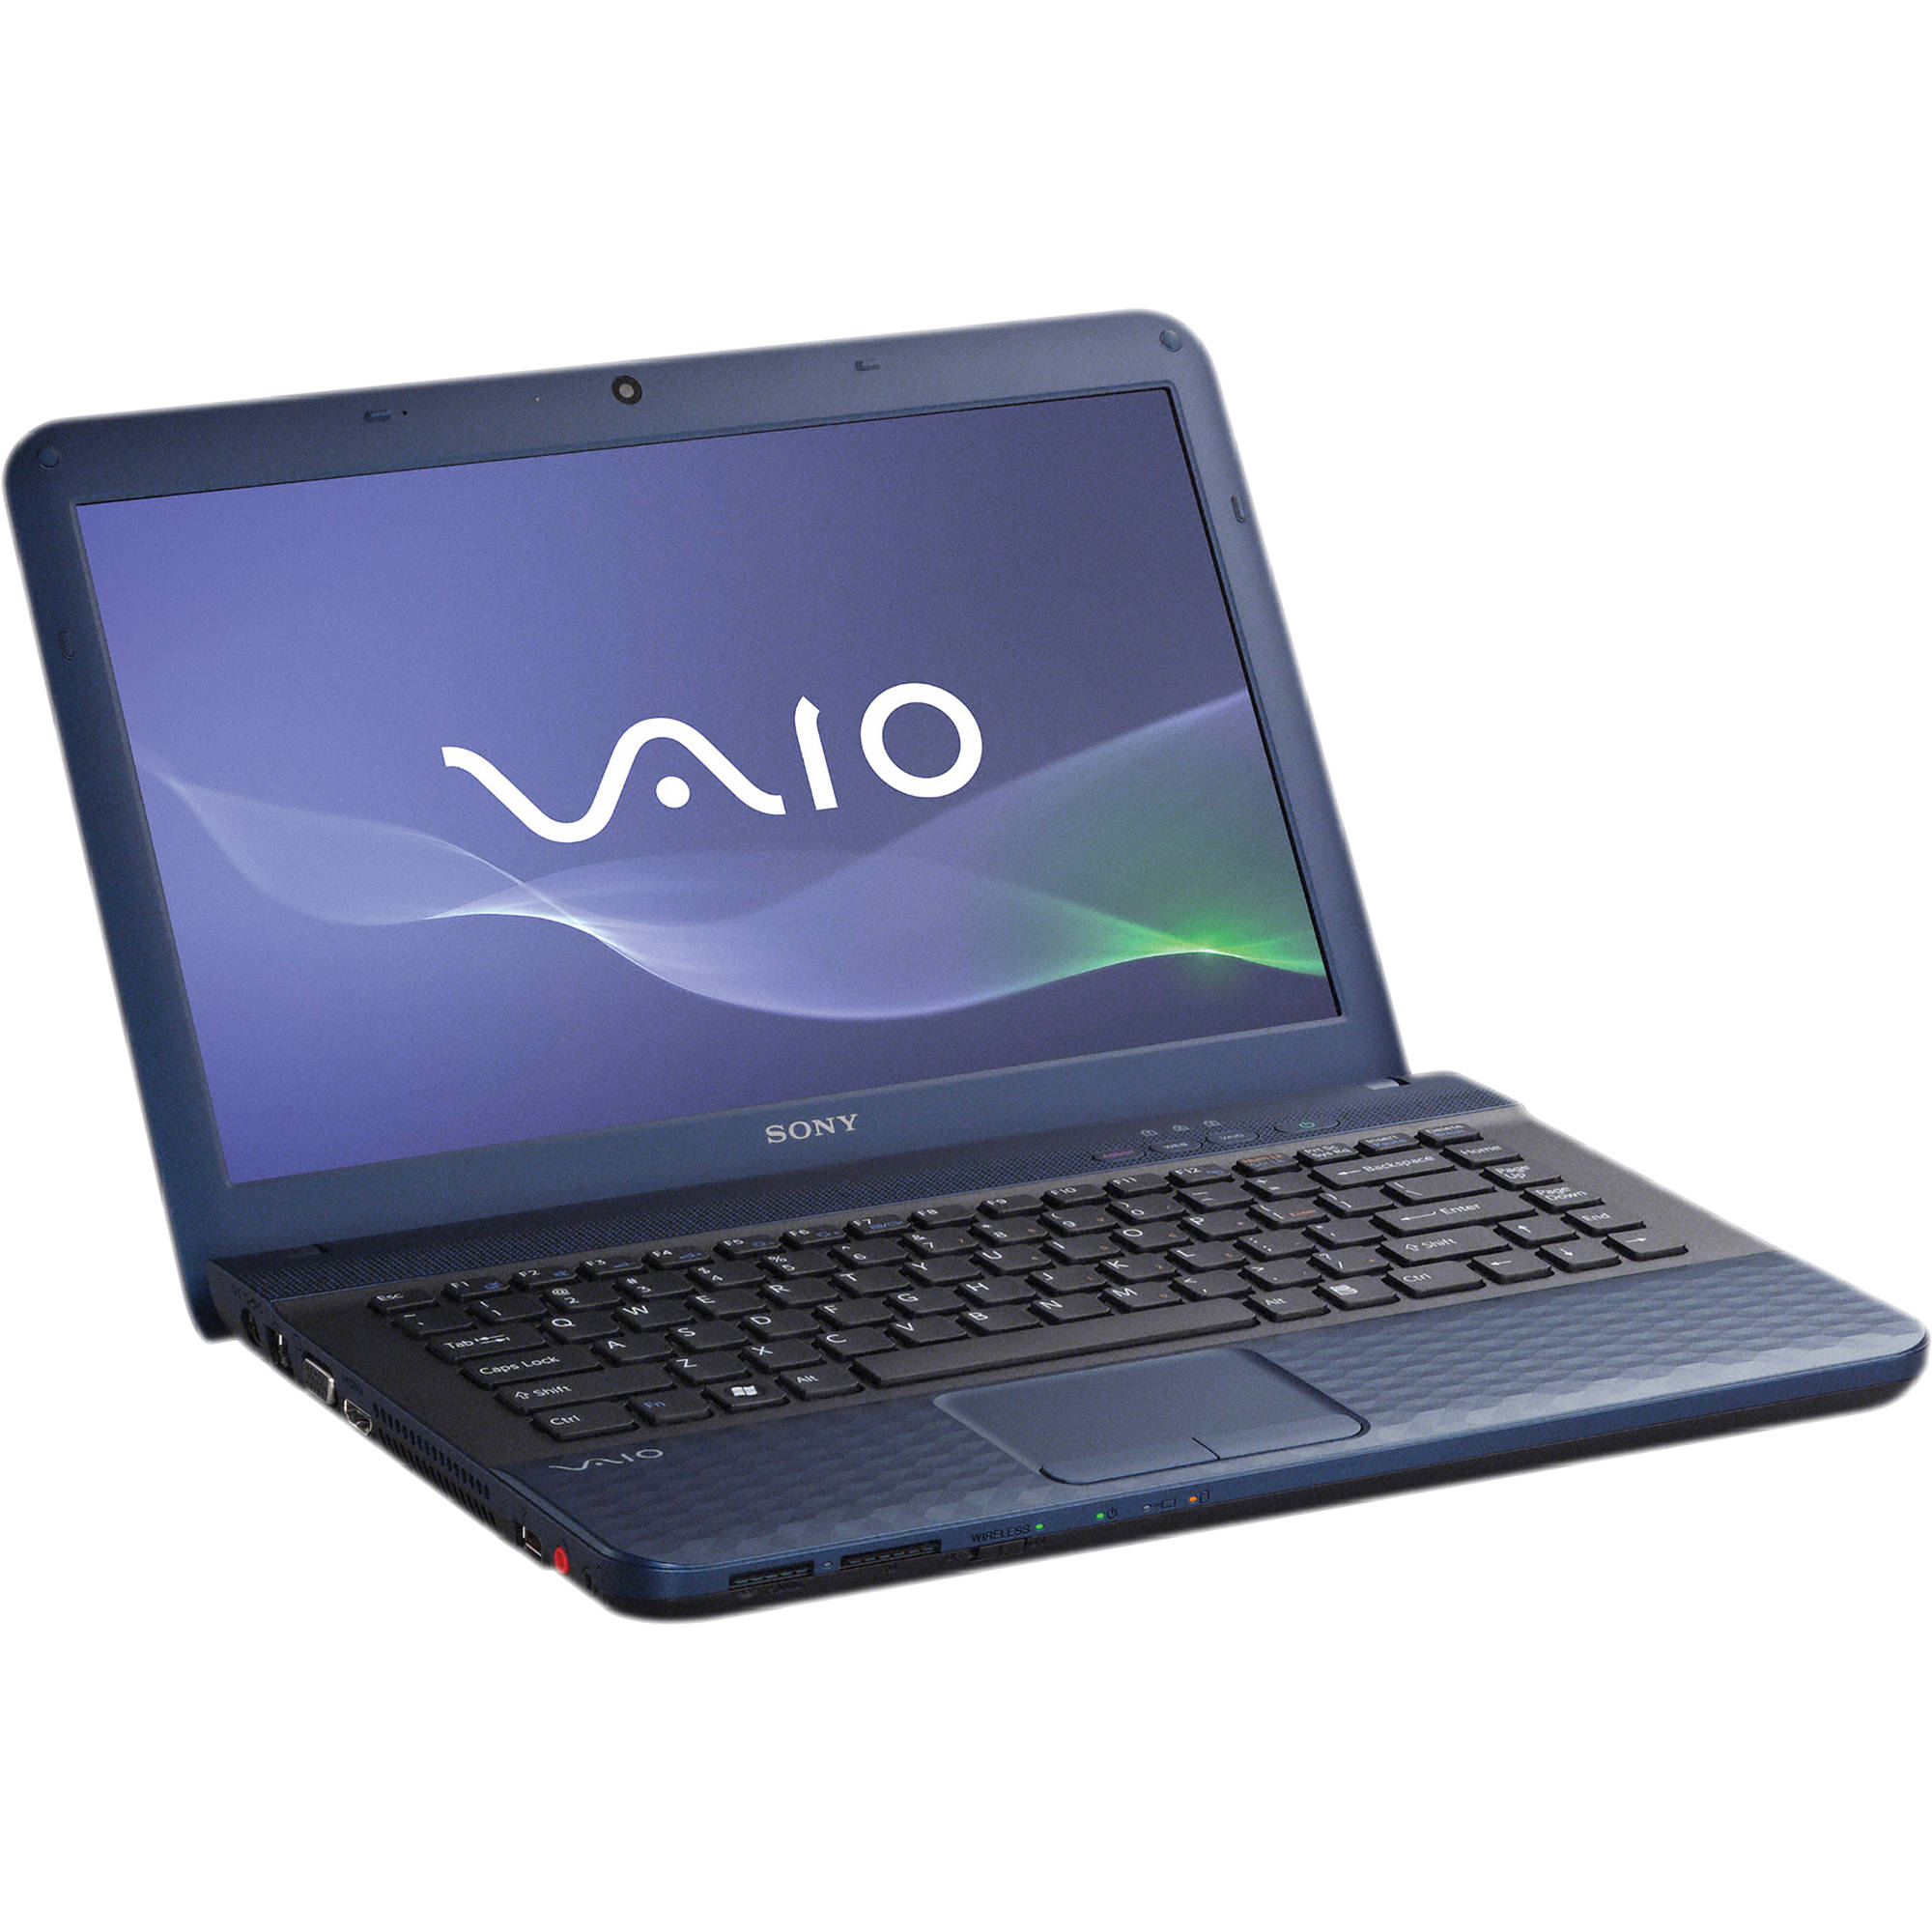 Sony Vaio VPCEG11FX Intel Wireless Display Drivers Mac